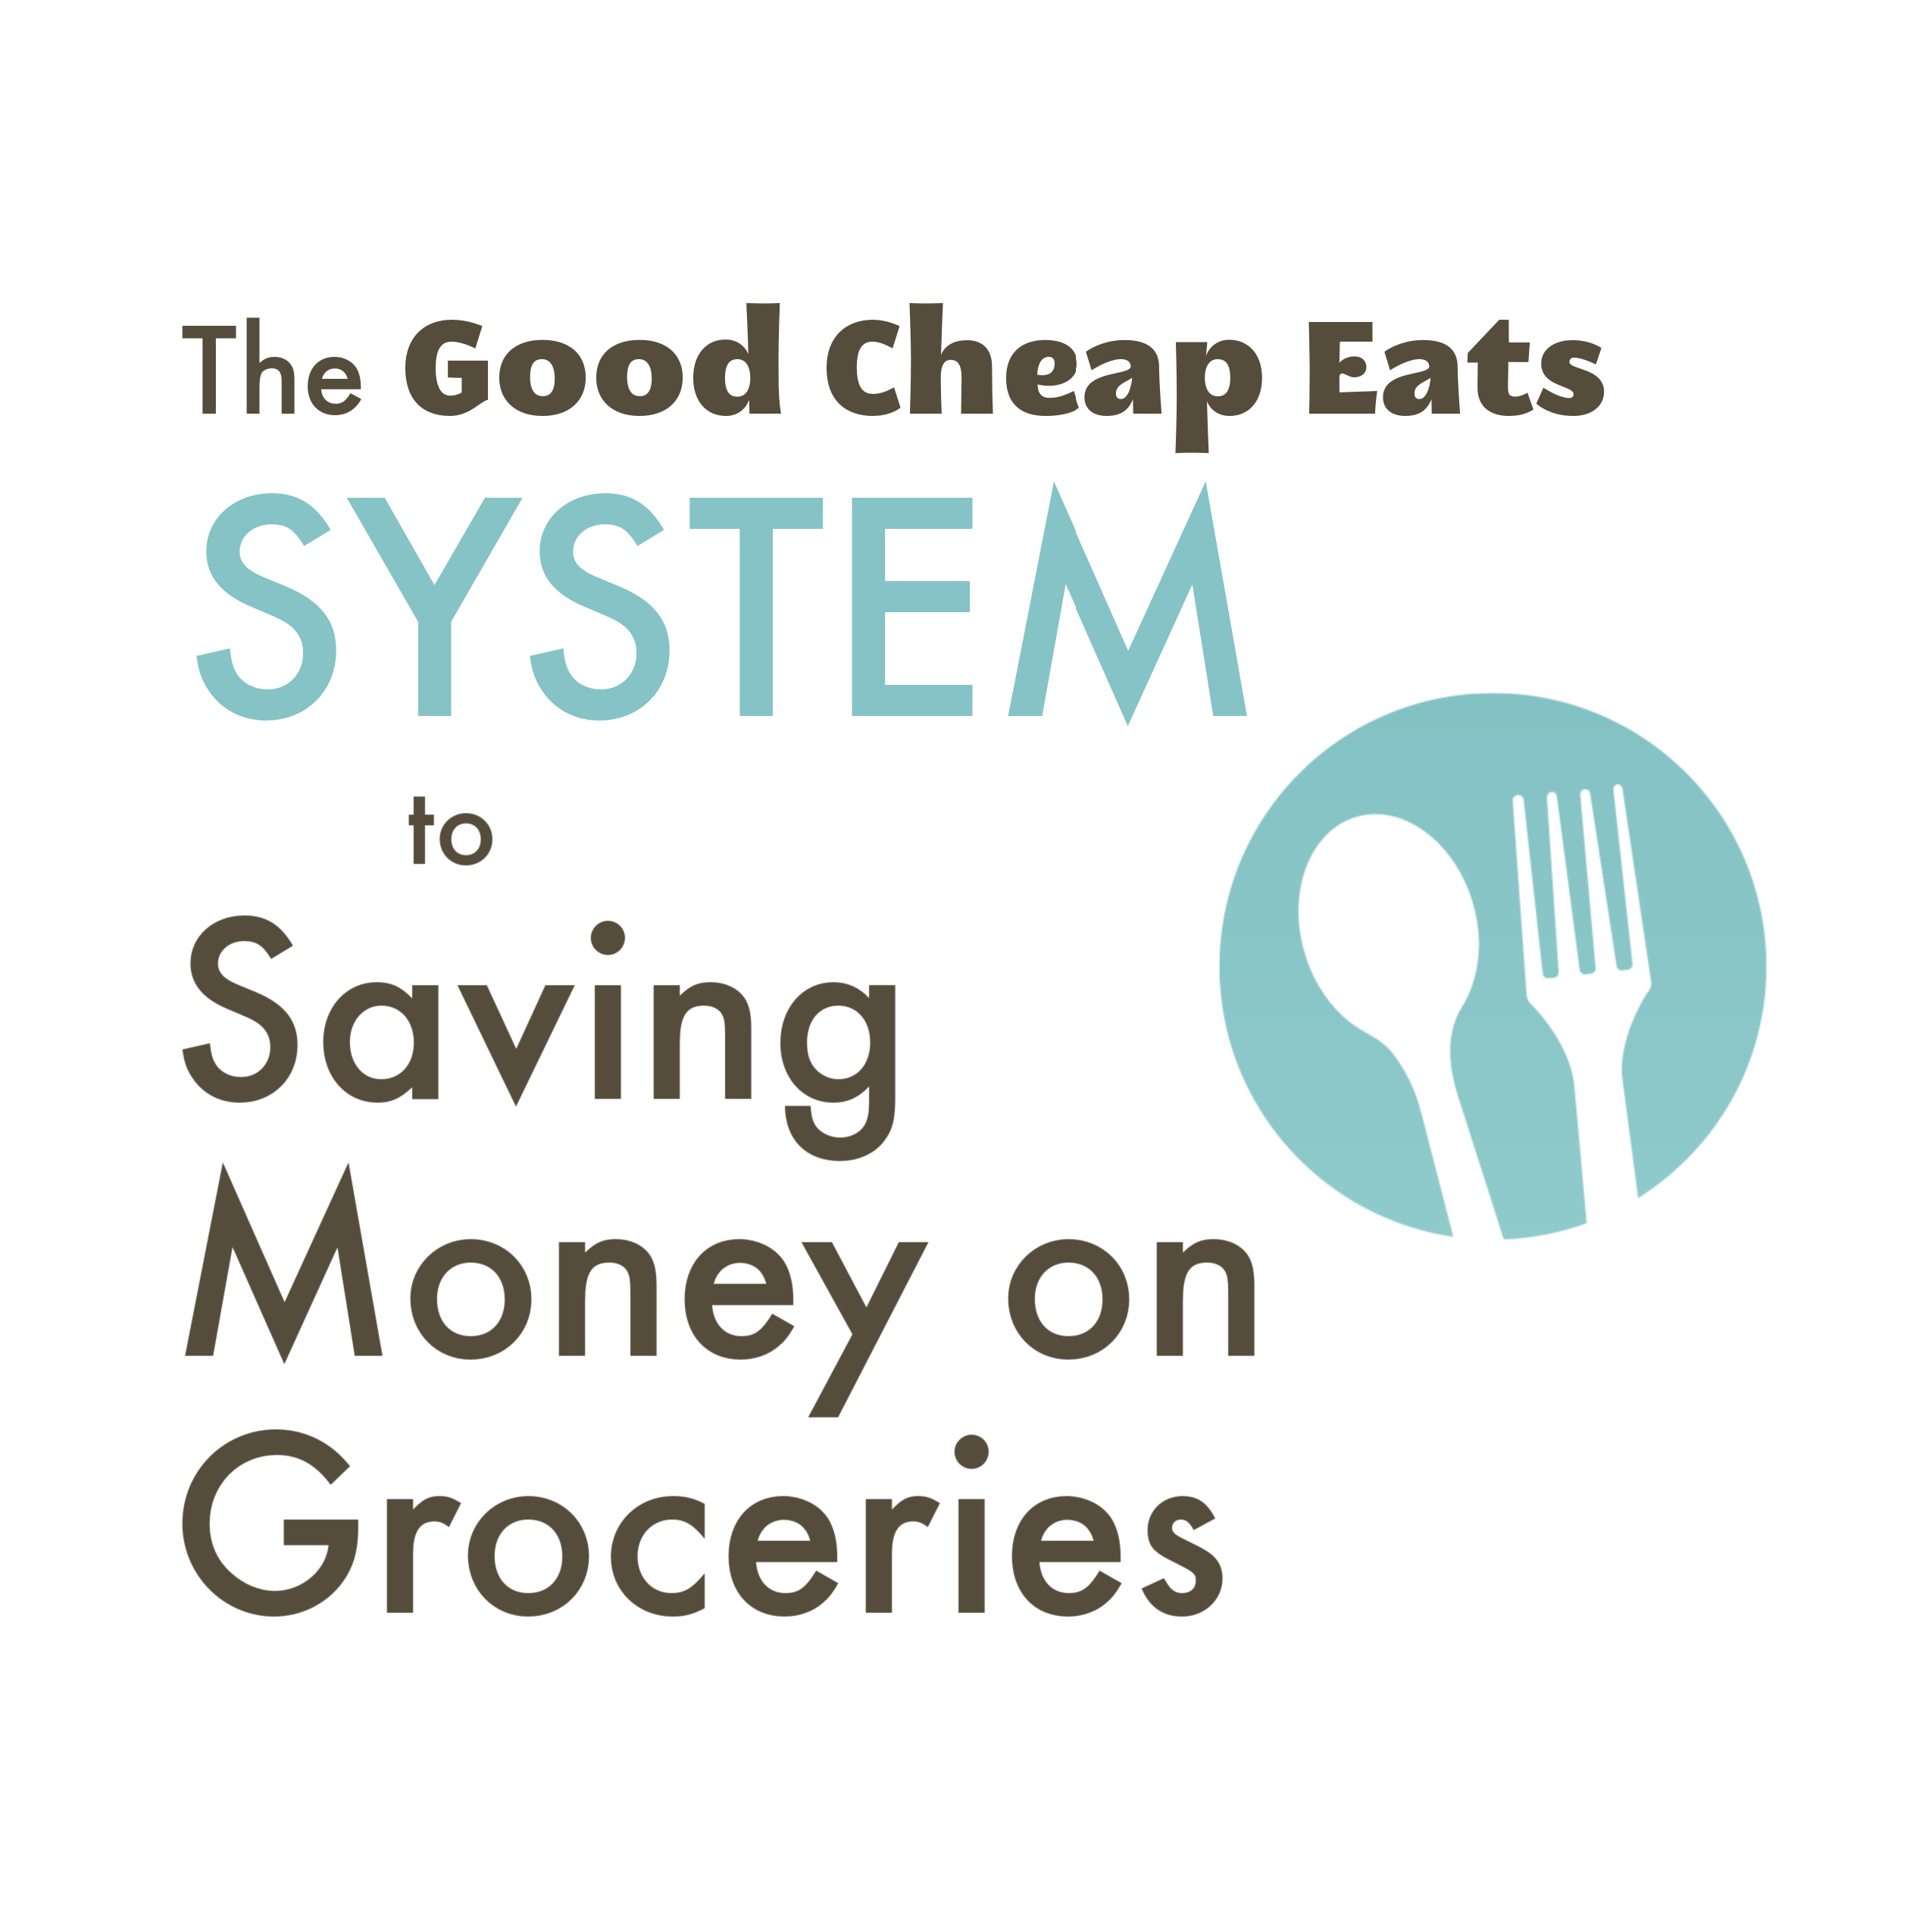 the Good Cheap Eats System